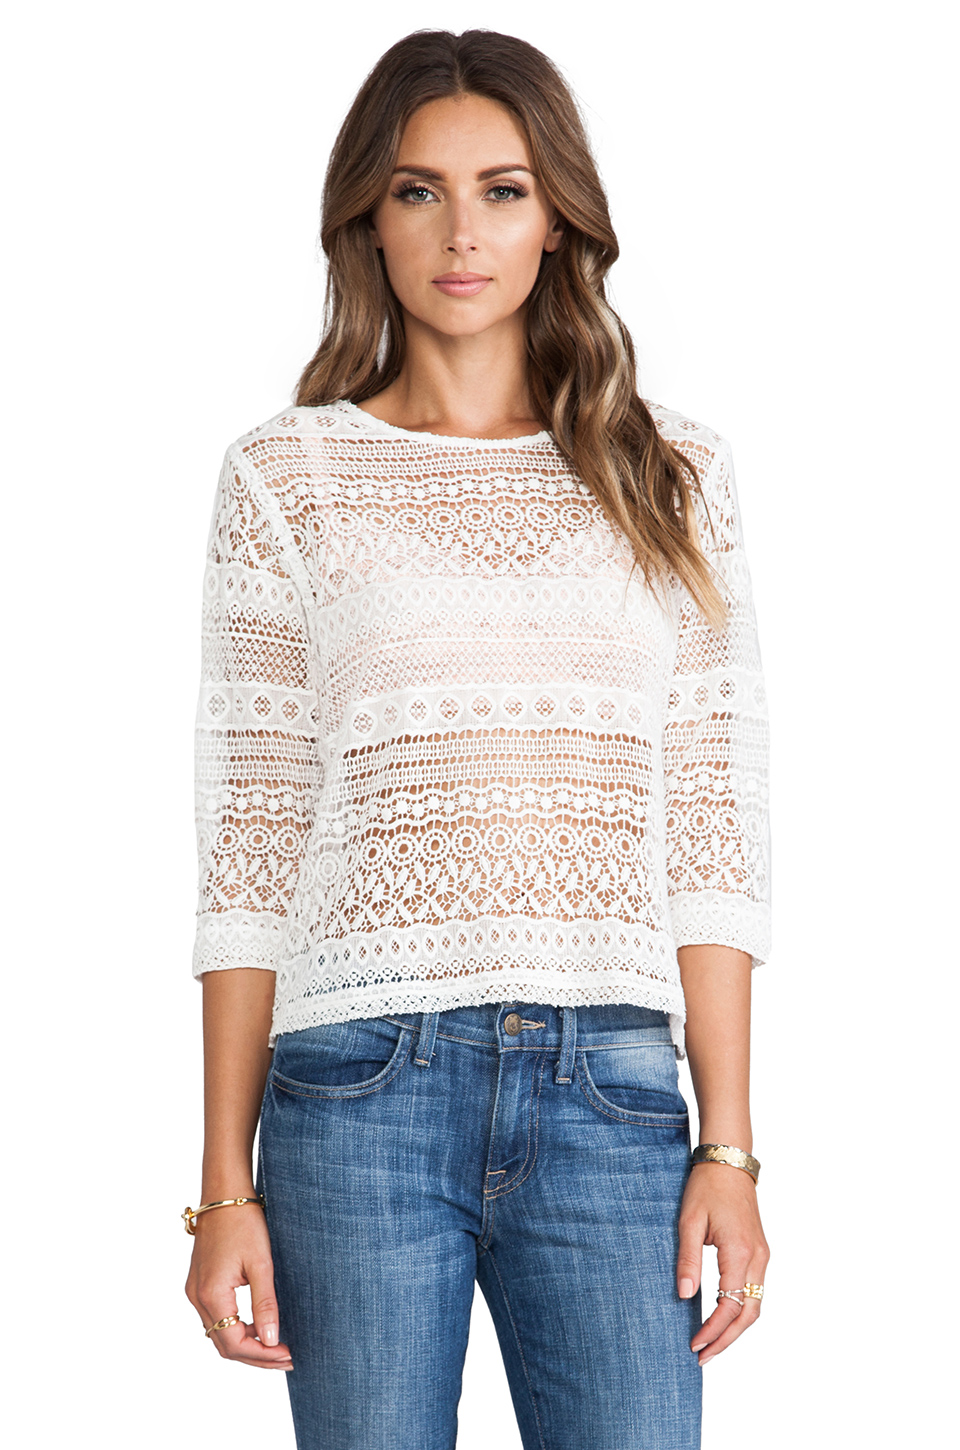 Cotton-Lace-Top-for-Women-1